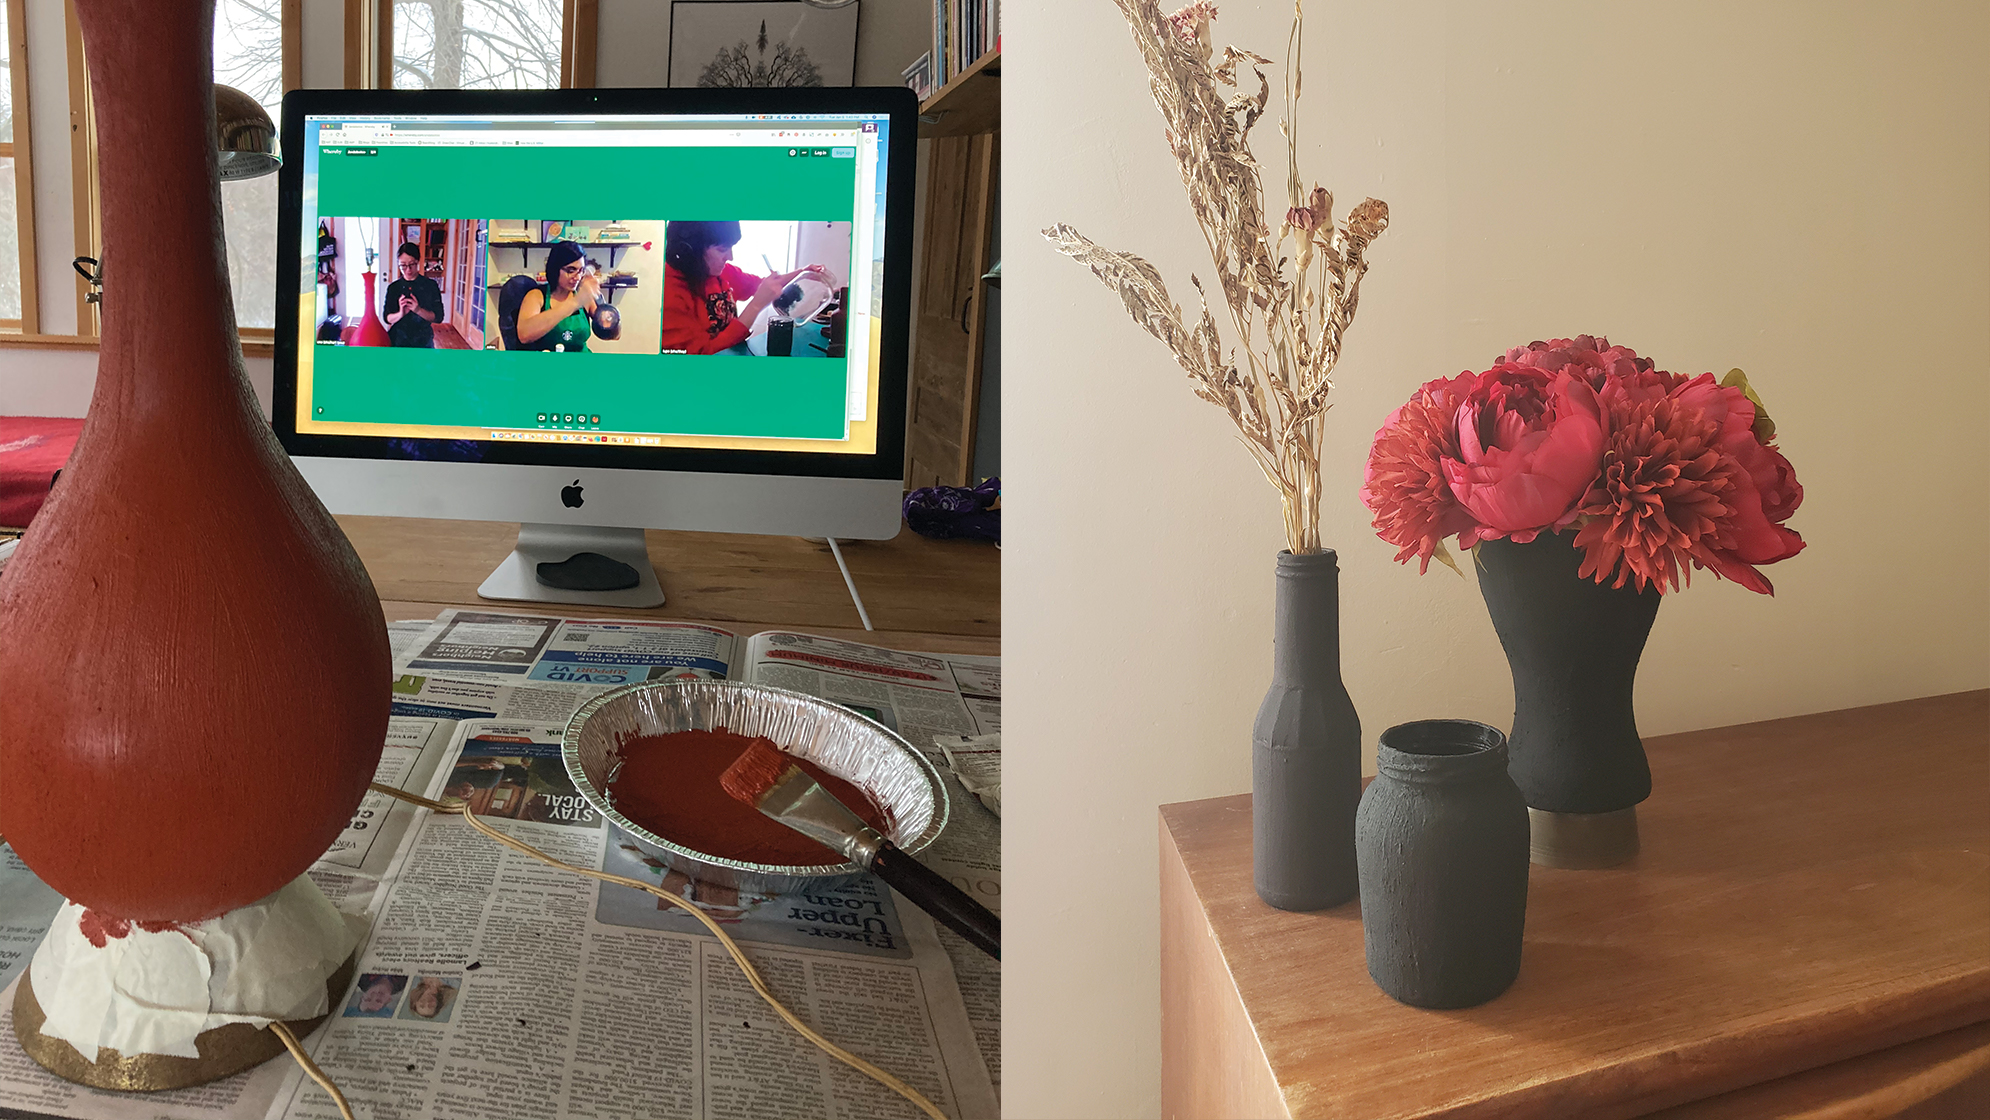 Photo composite. To the left: close-up of a lamp in the process of being painted with red, clay-like paint. In the background of the photo is an iMac, on which we are visible the And Also Too team in a conference room. Each of the team members is also painting an object. To the right: an arrangement of three clay-like vases holding dry flowers.